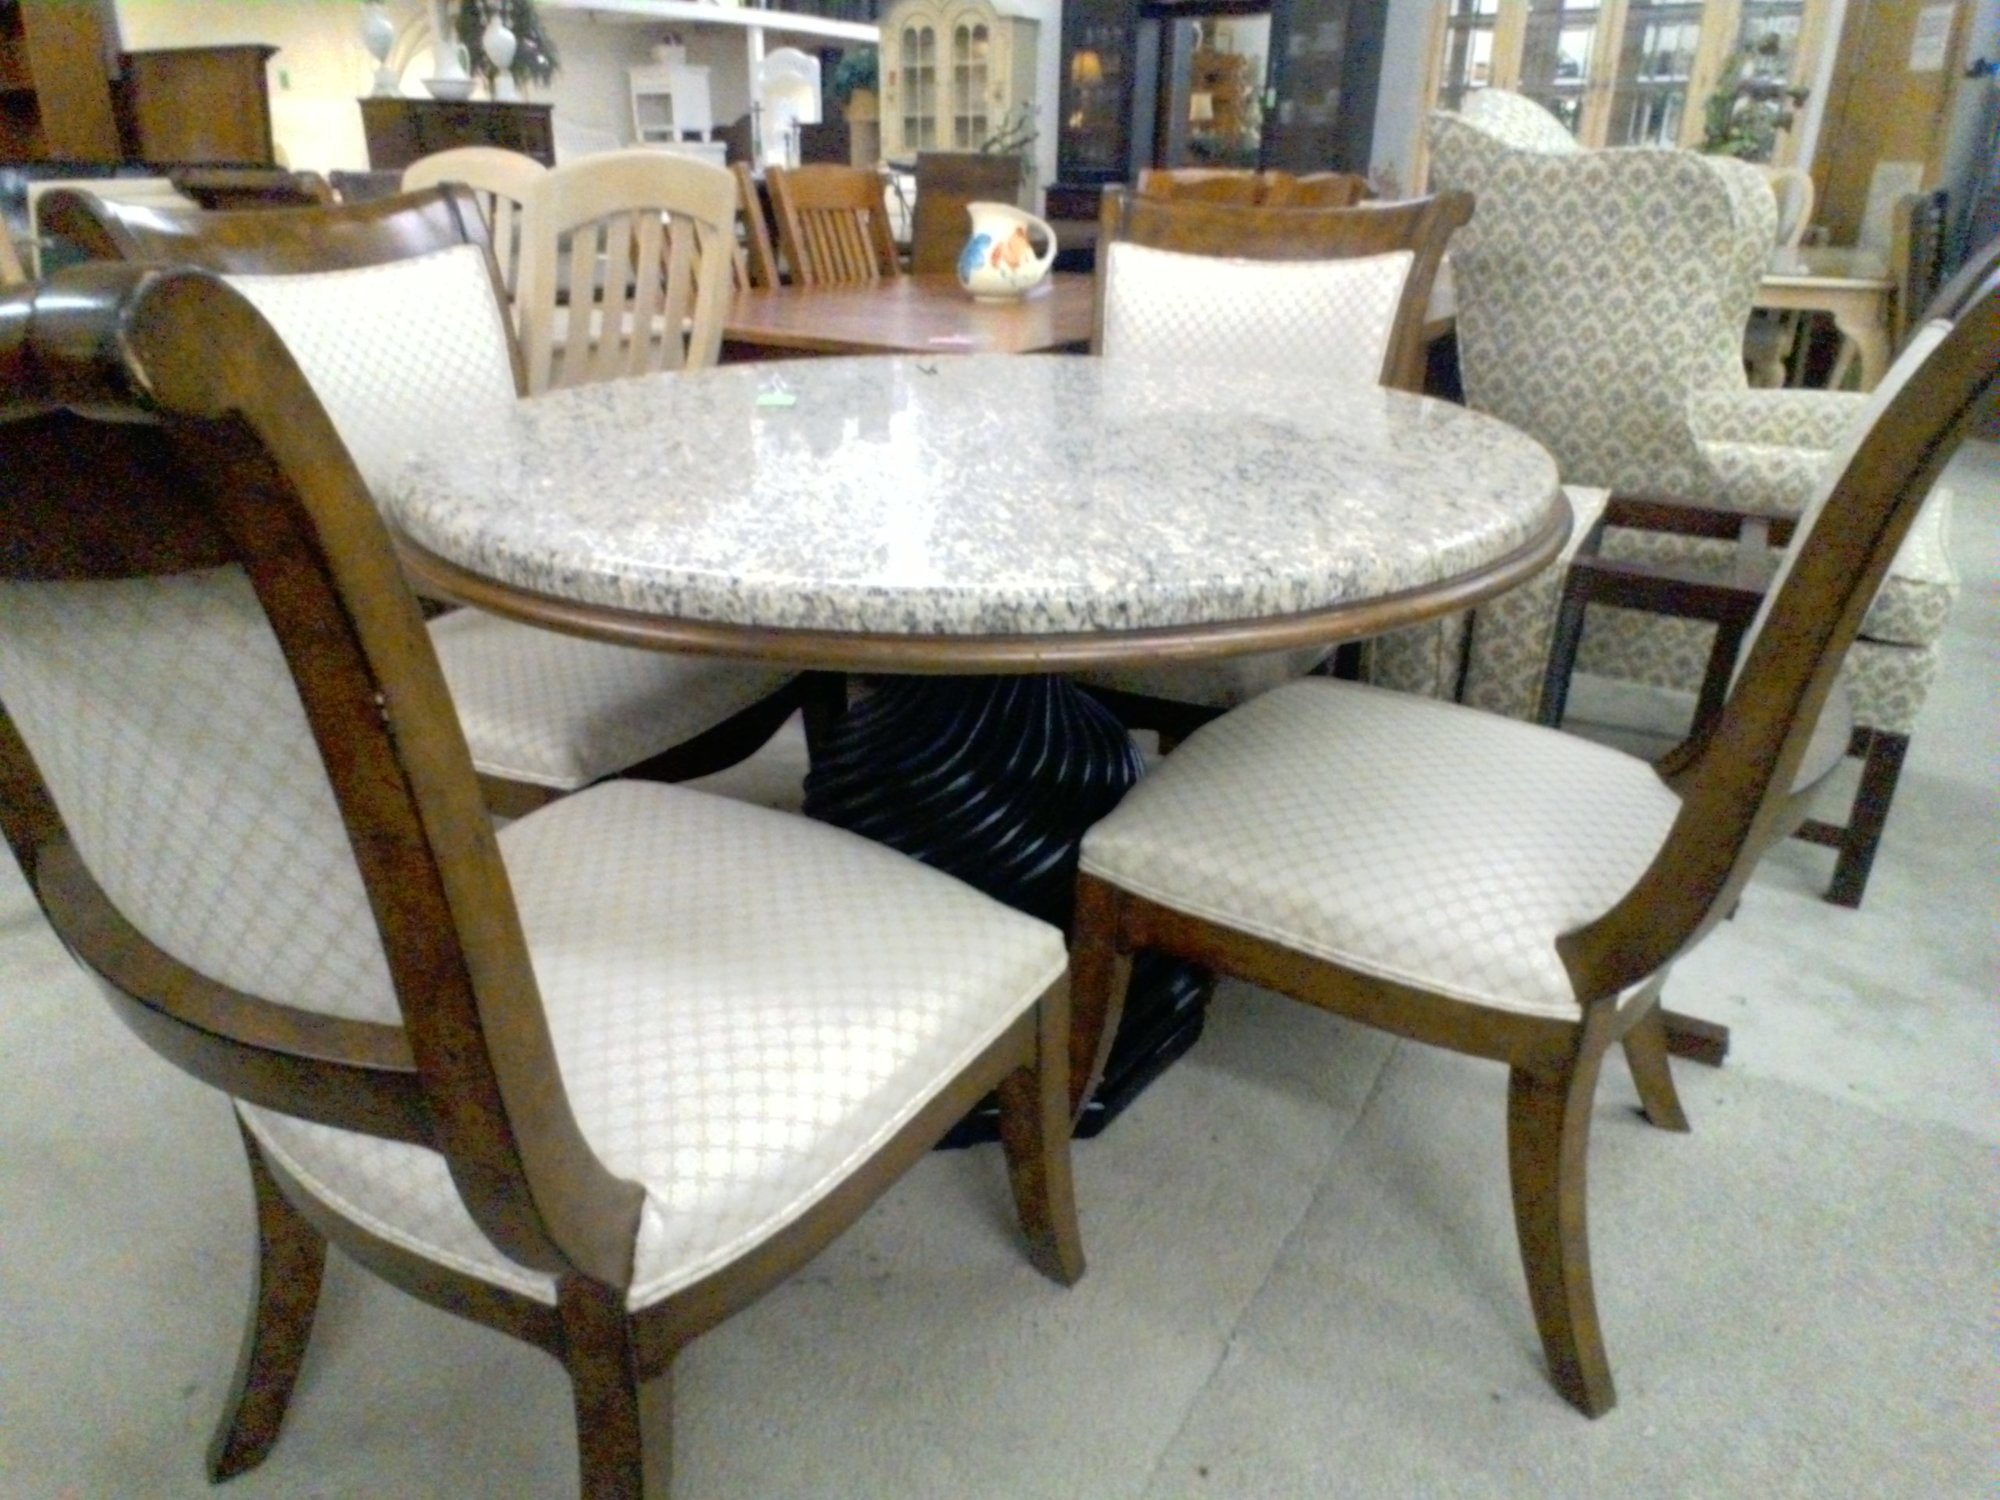 DINING TABLE & 4 CHAIRS, None, Size: None